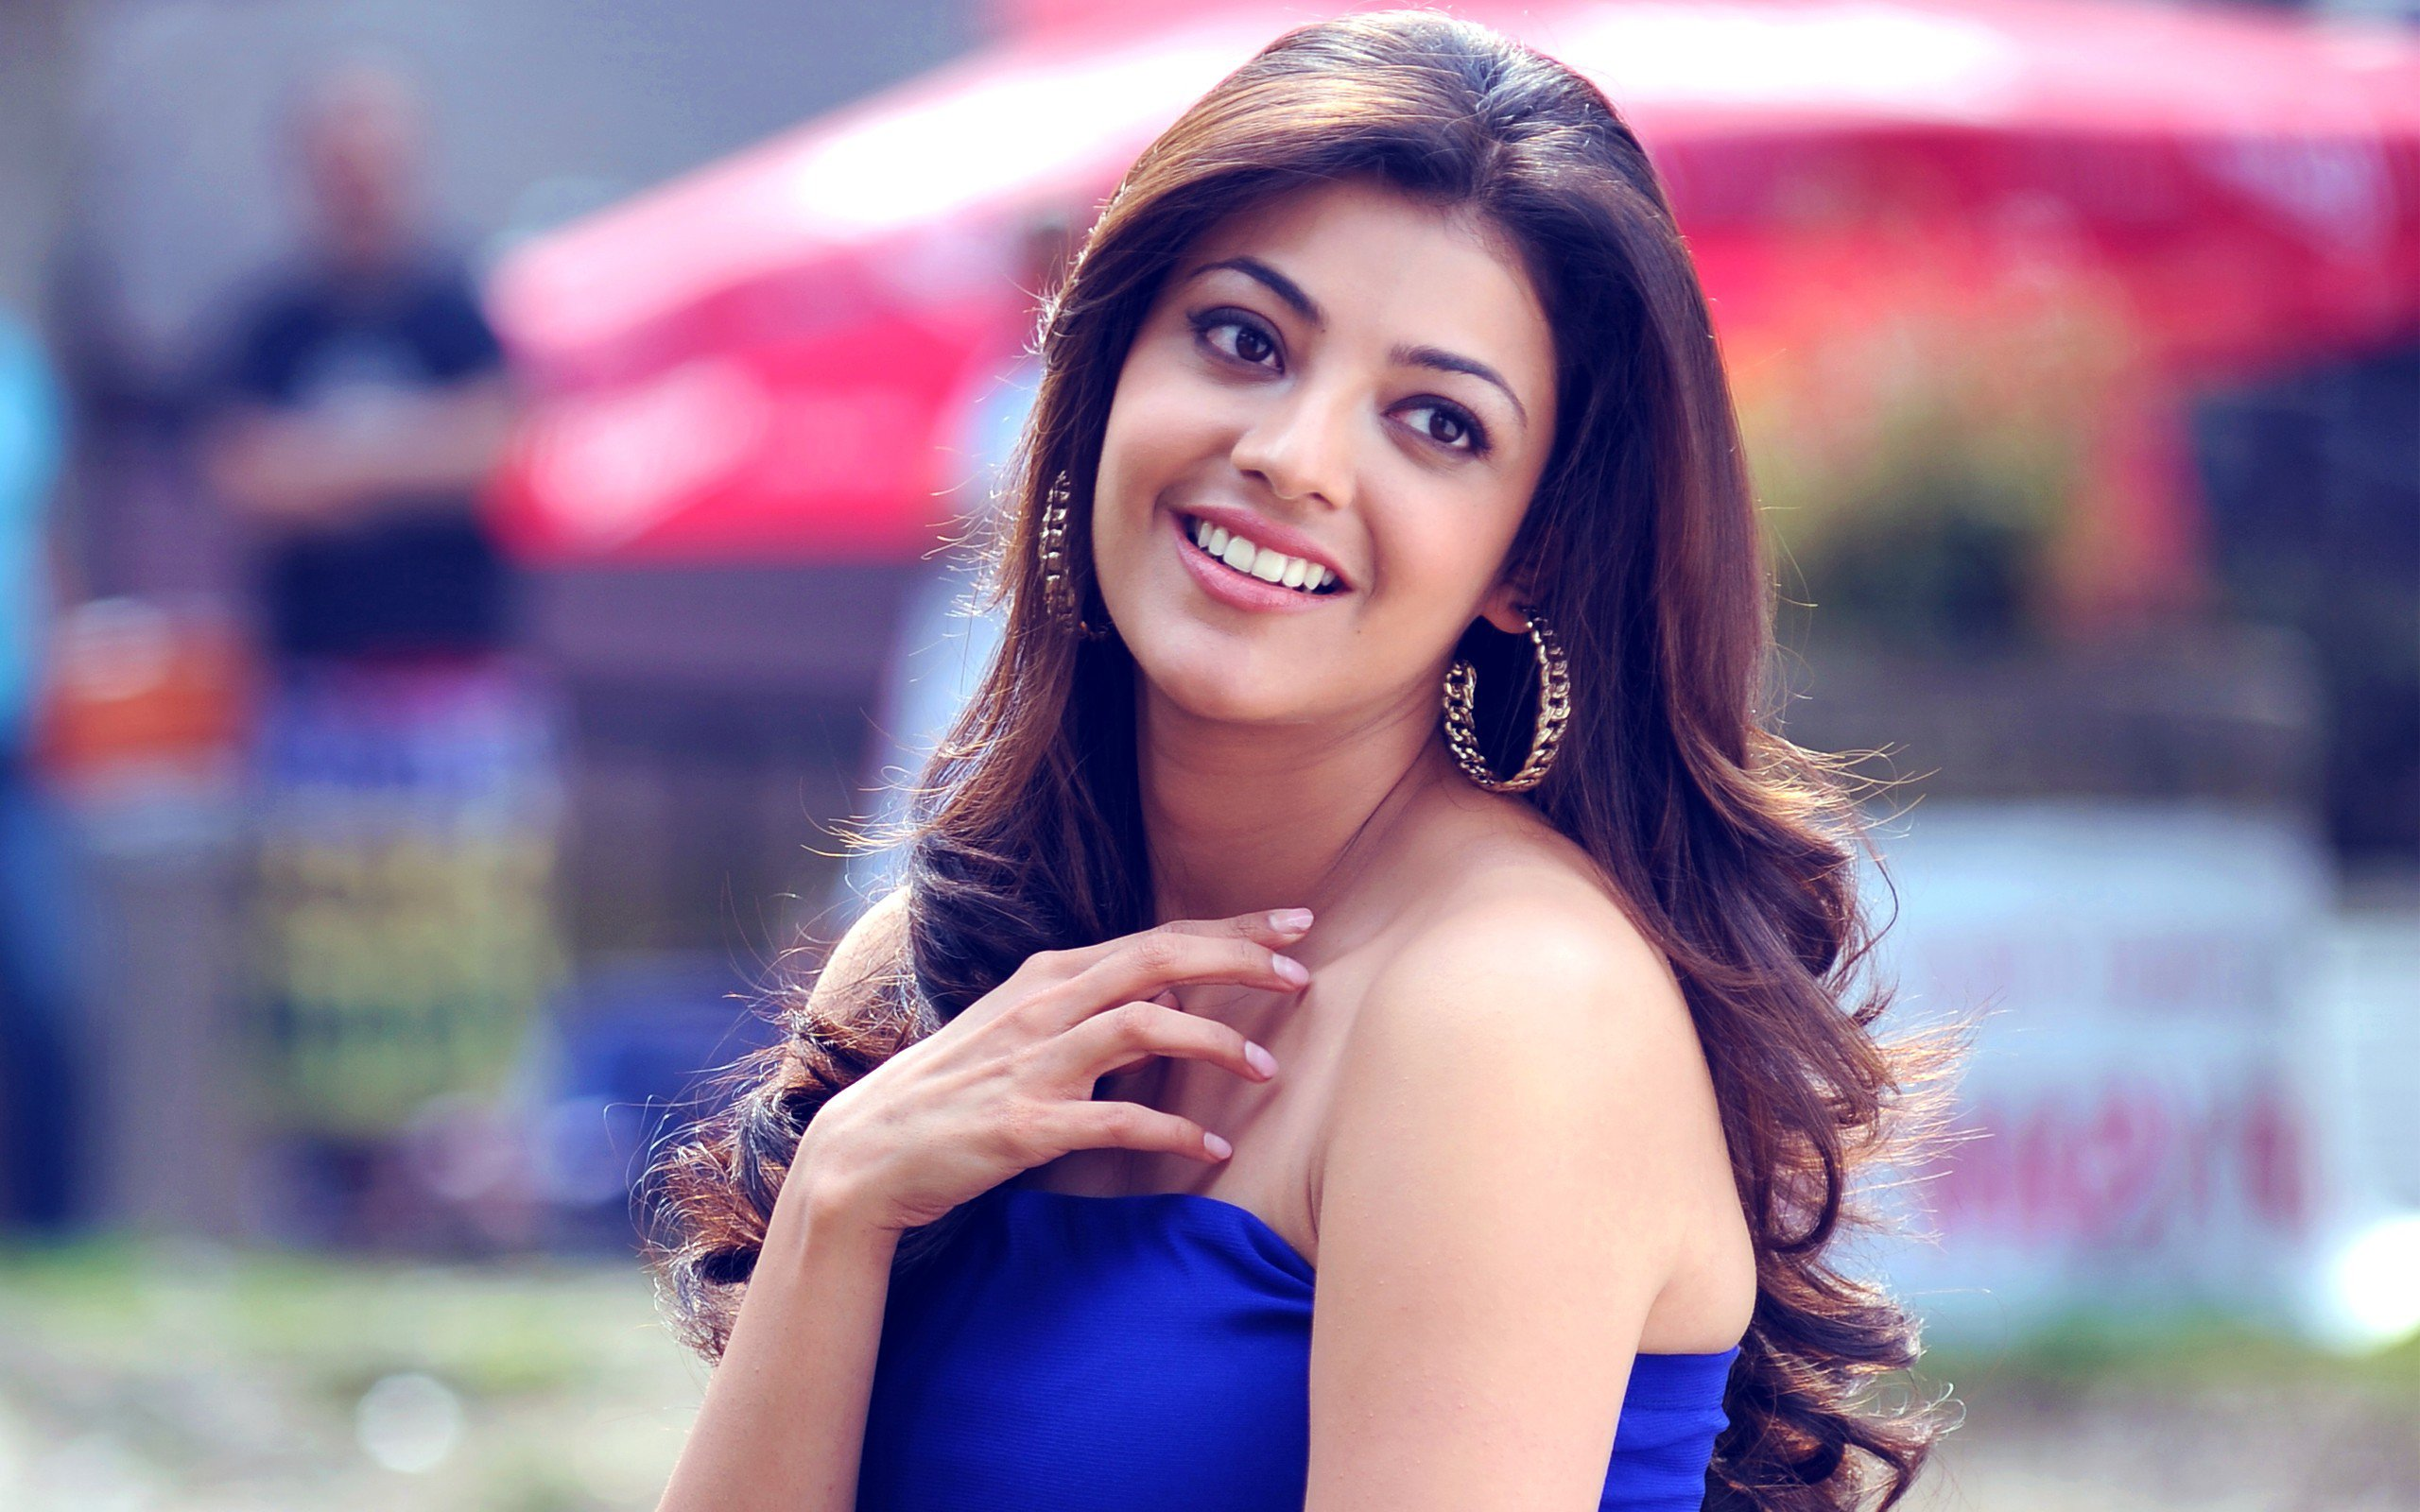 1280x720 2016 kajal agarwal 720p hd 4k wallpapers, images